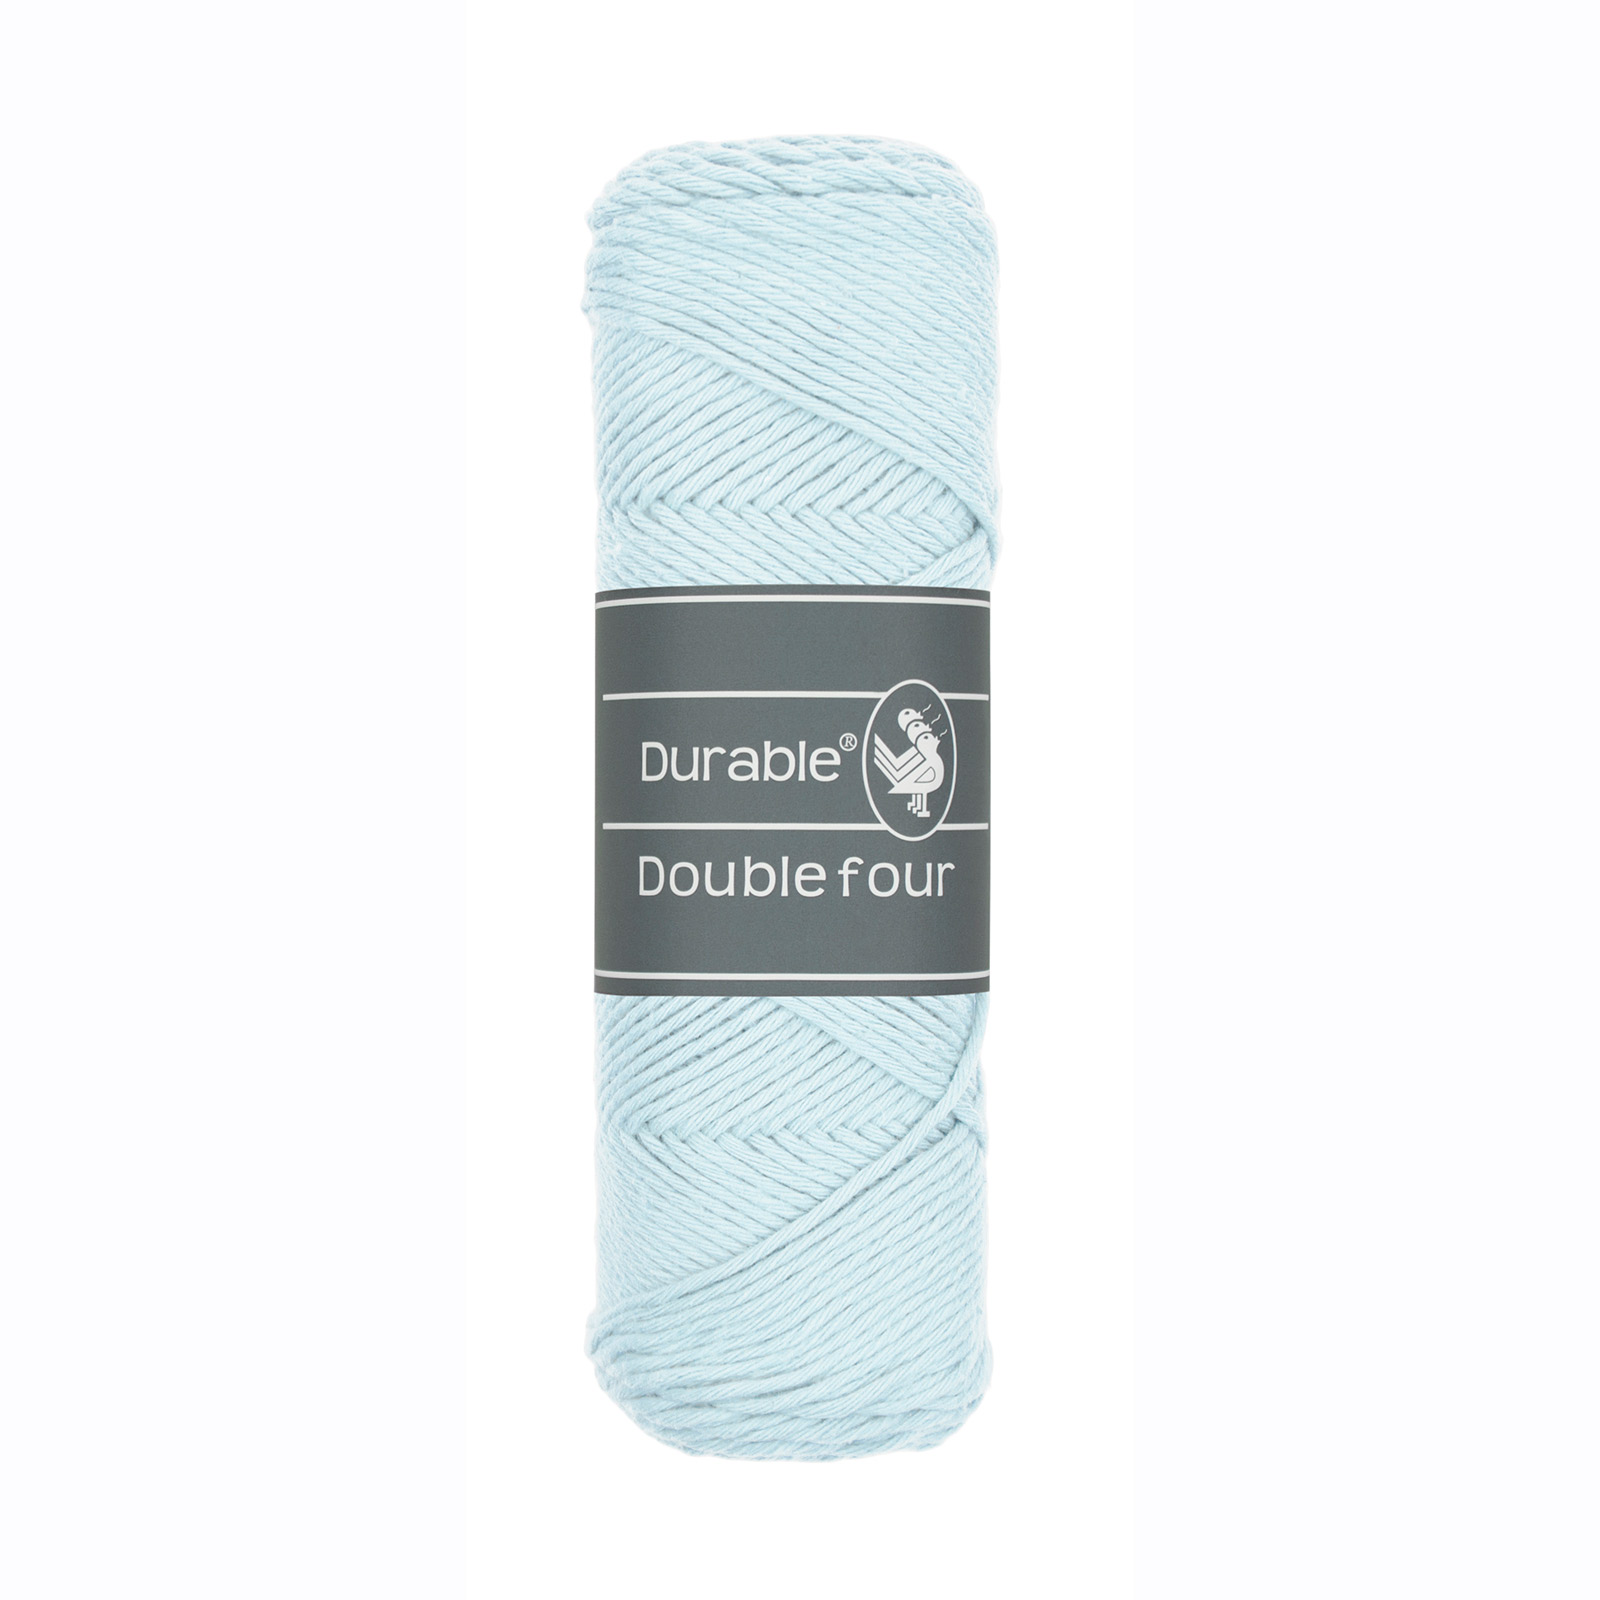 Durable Double Four – 828 Light Blue